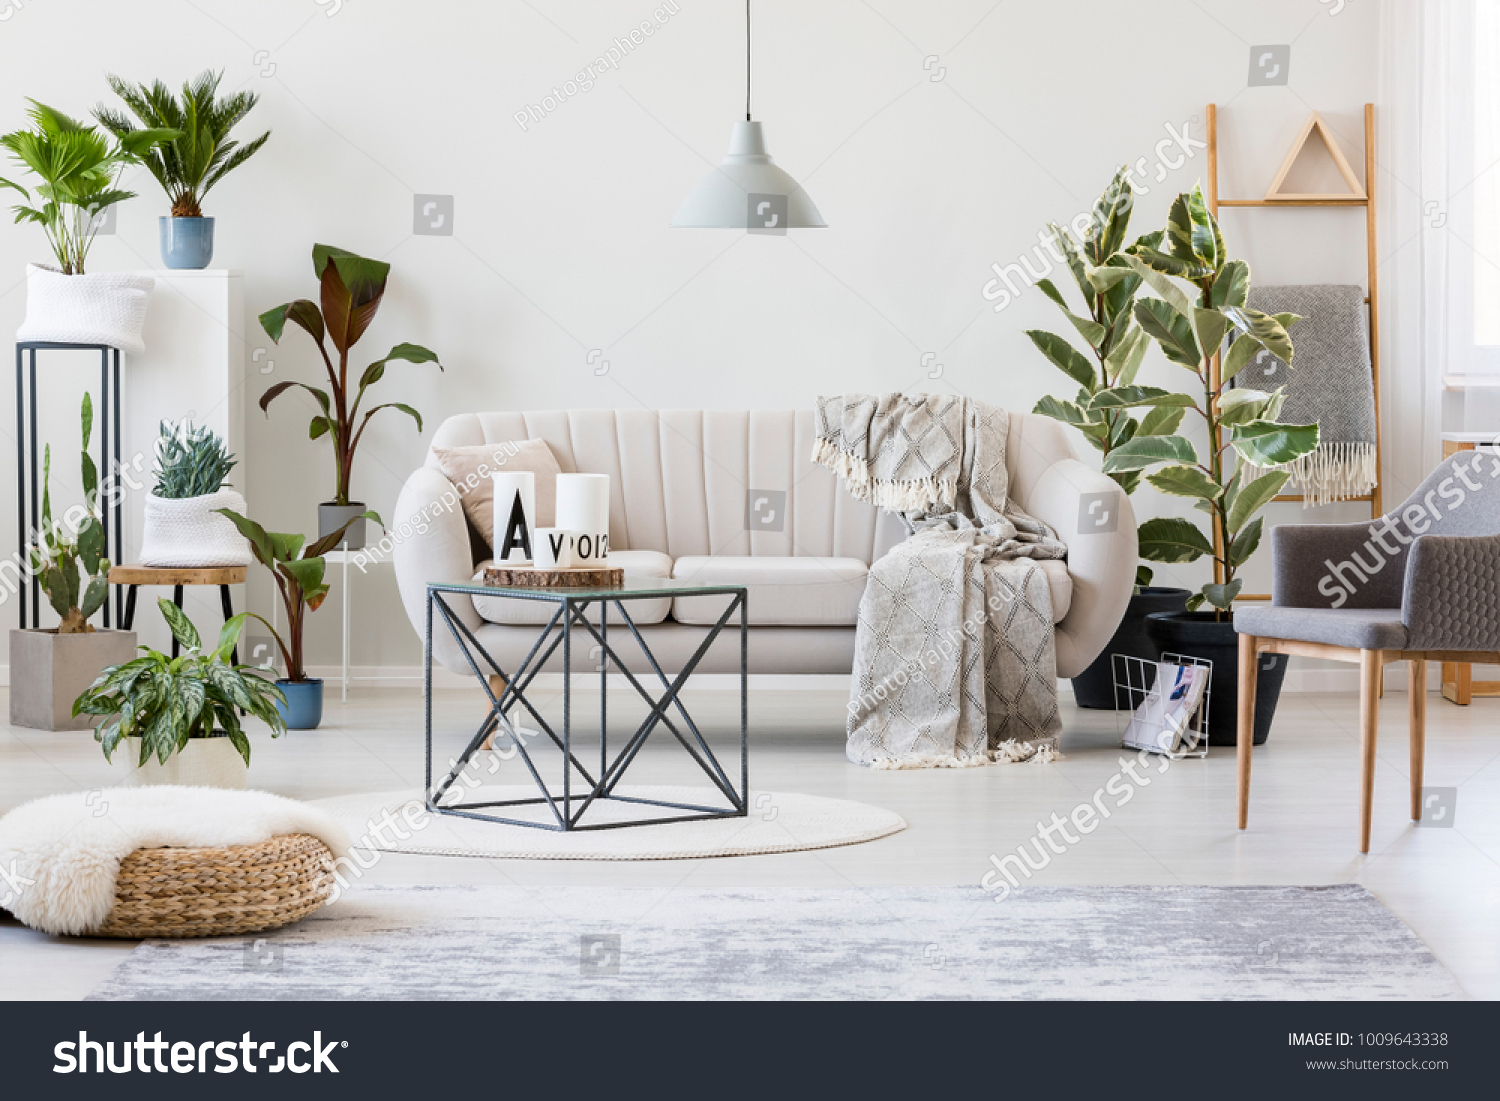 https://image.shutterstock.com/z/stock-photo-pouf-and-grey-armchair-in-botanic-living-room-interior-with-beige-sofa-near-plants-and-table-on-rug-1009643338.jpg